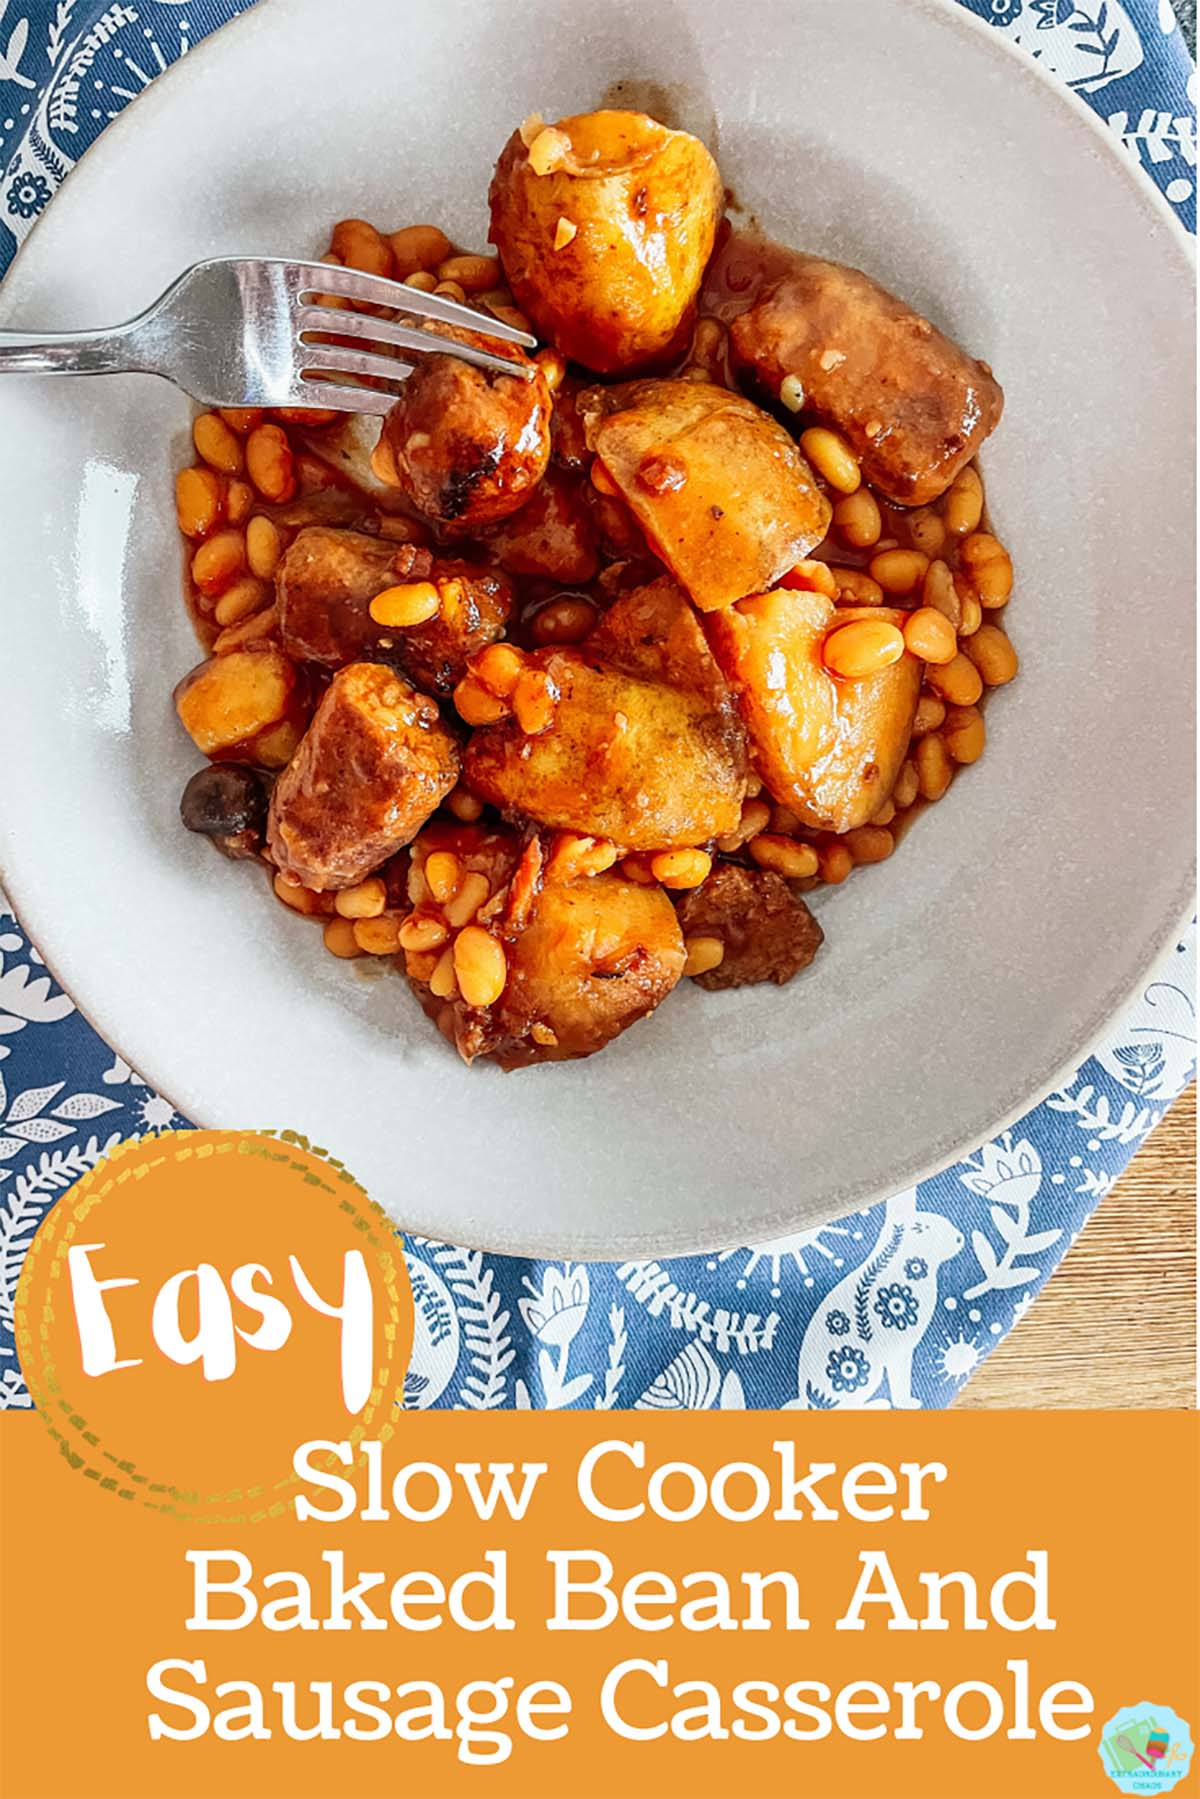 Easy to make Slow cooker Baked bean and sausage casserole-2